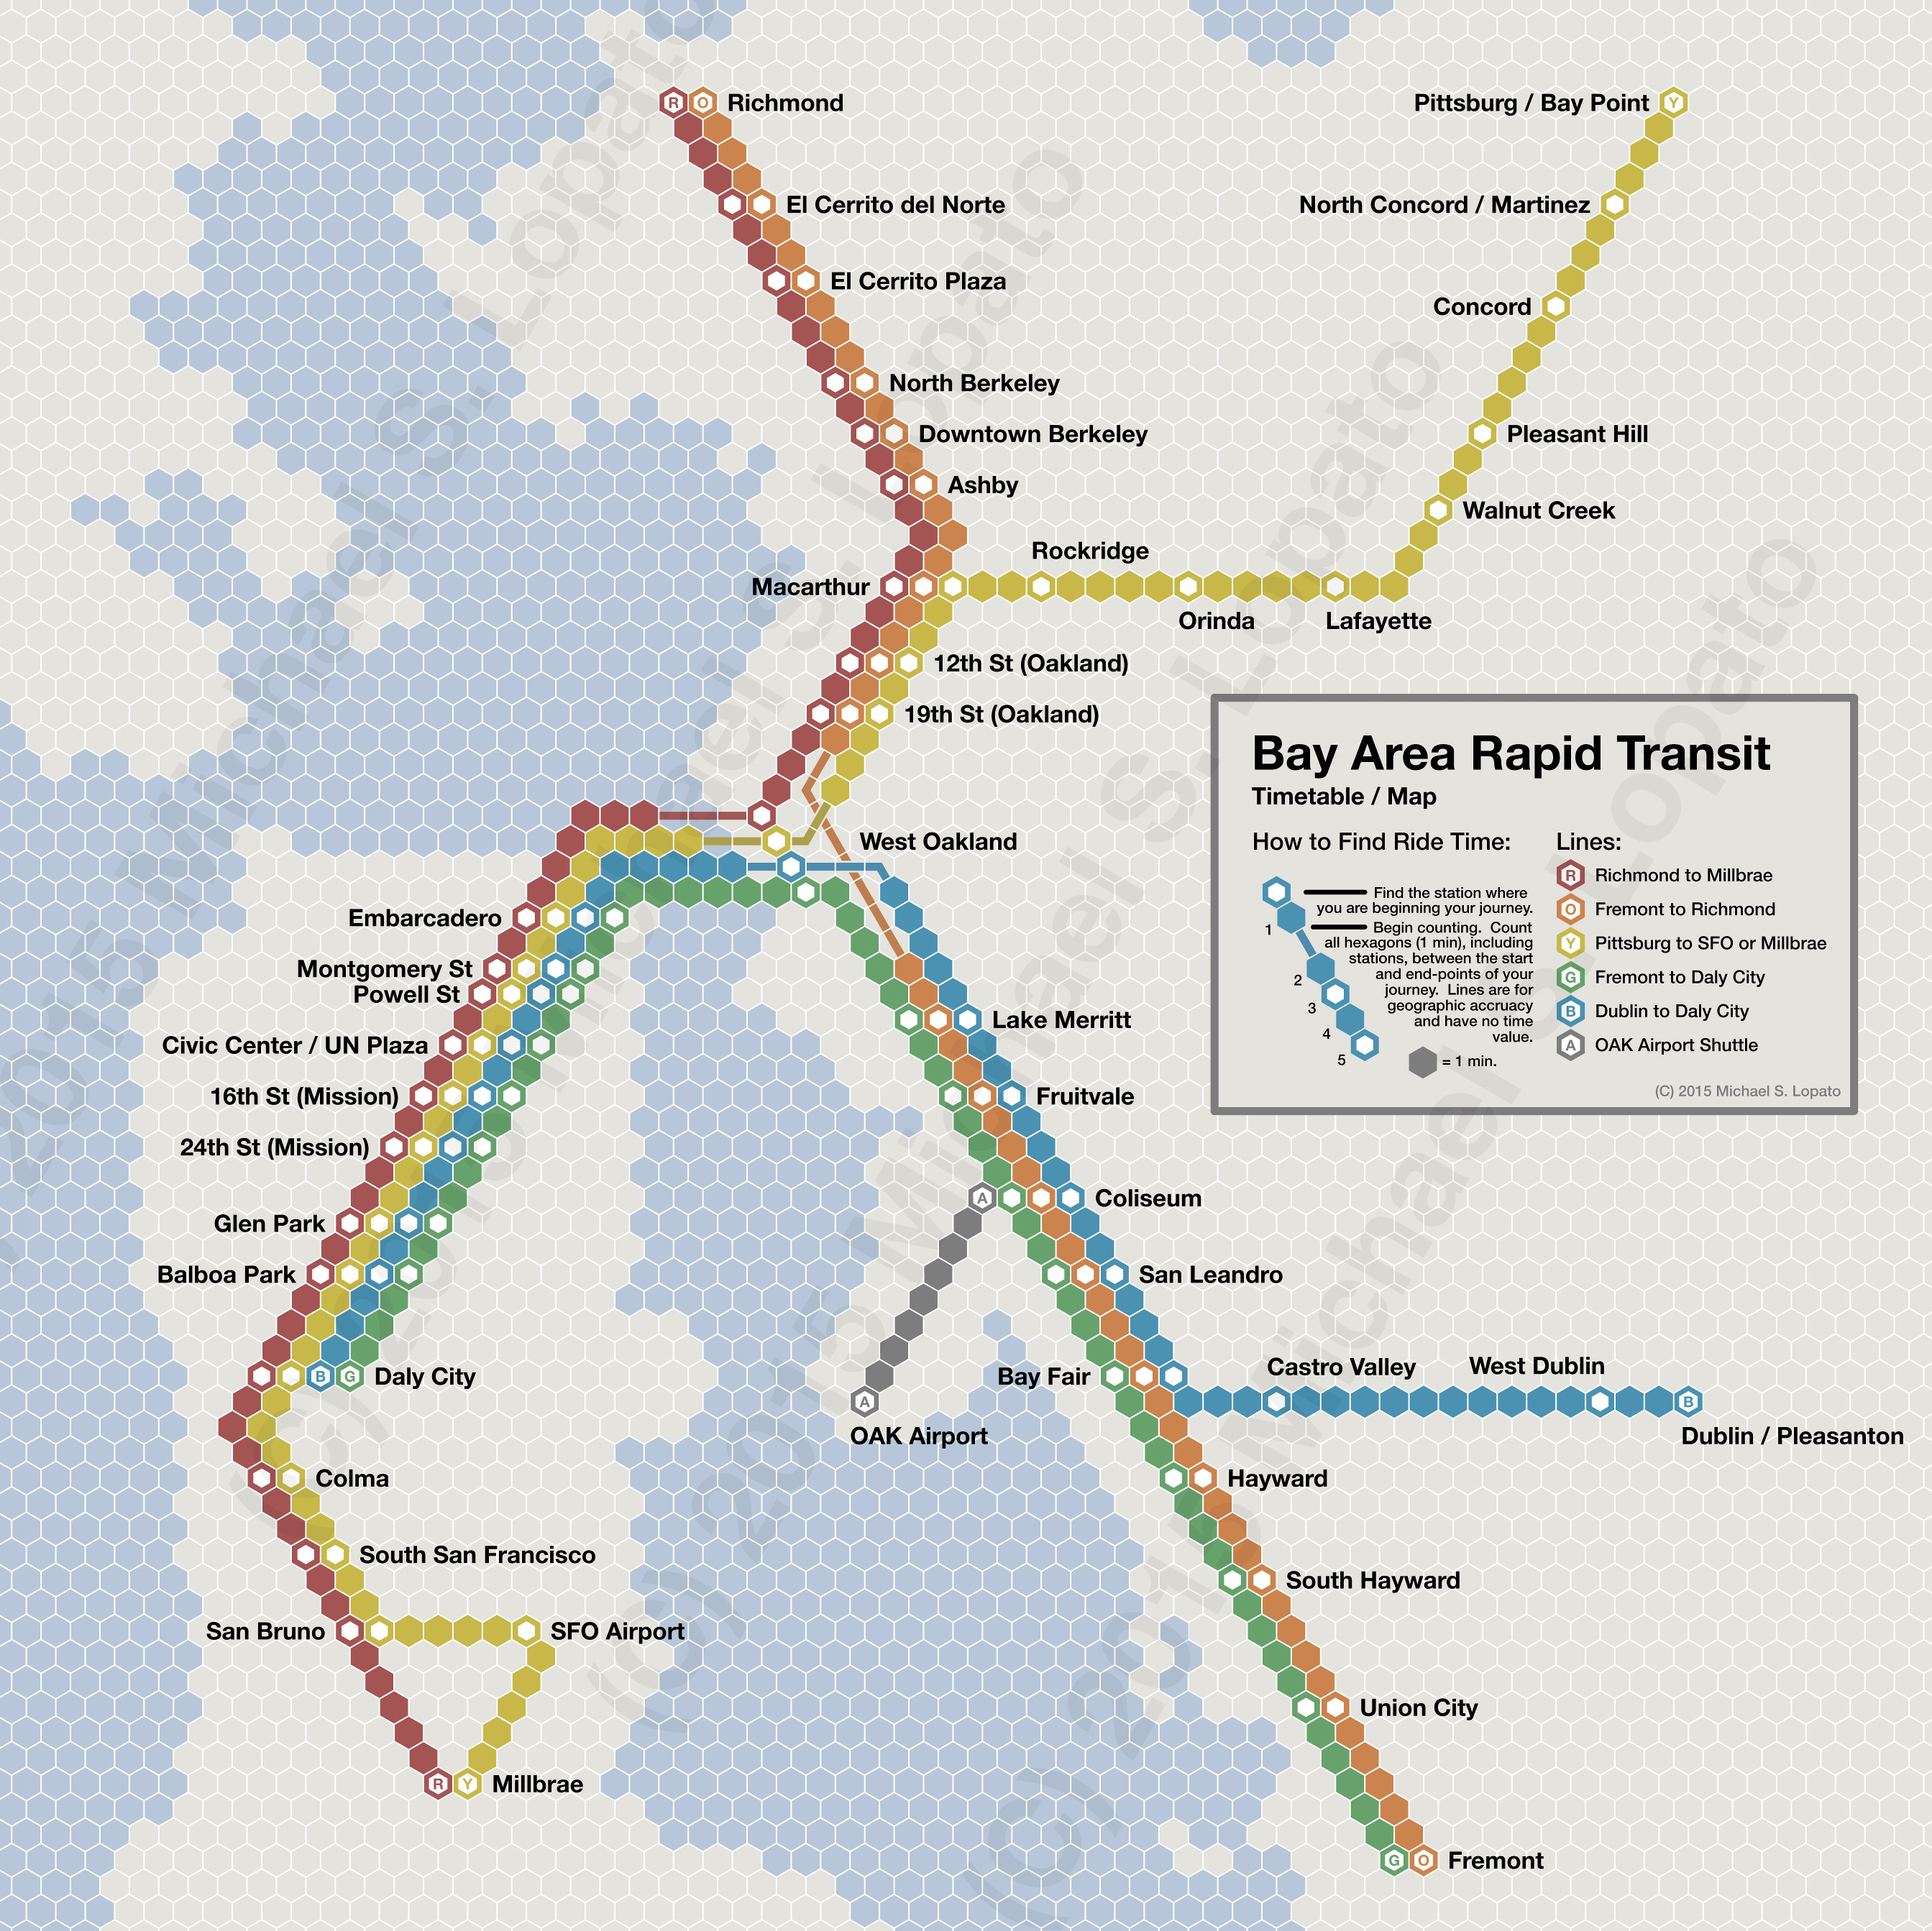 Submission Time Scale Map of Bay Area Rapid Transit Maps